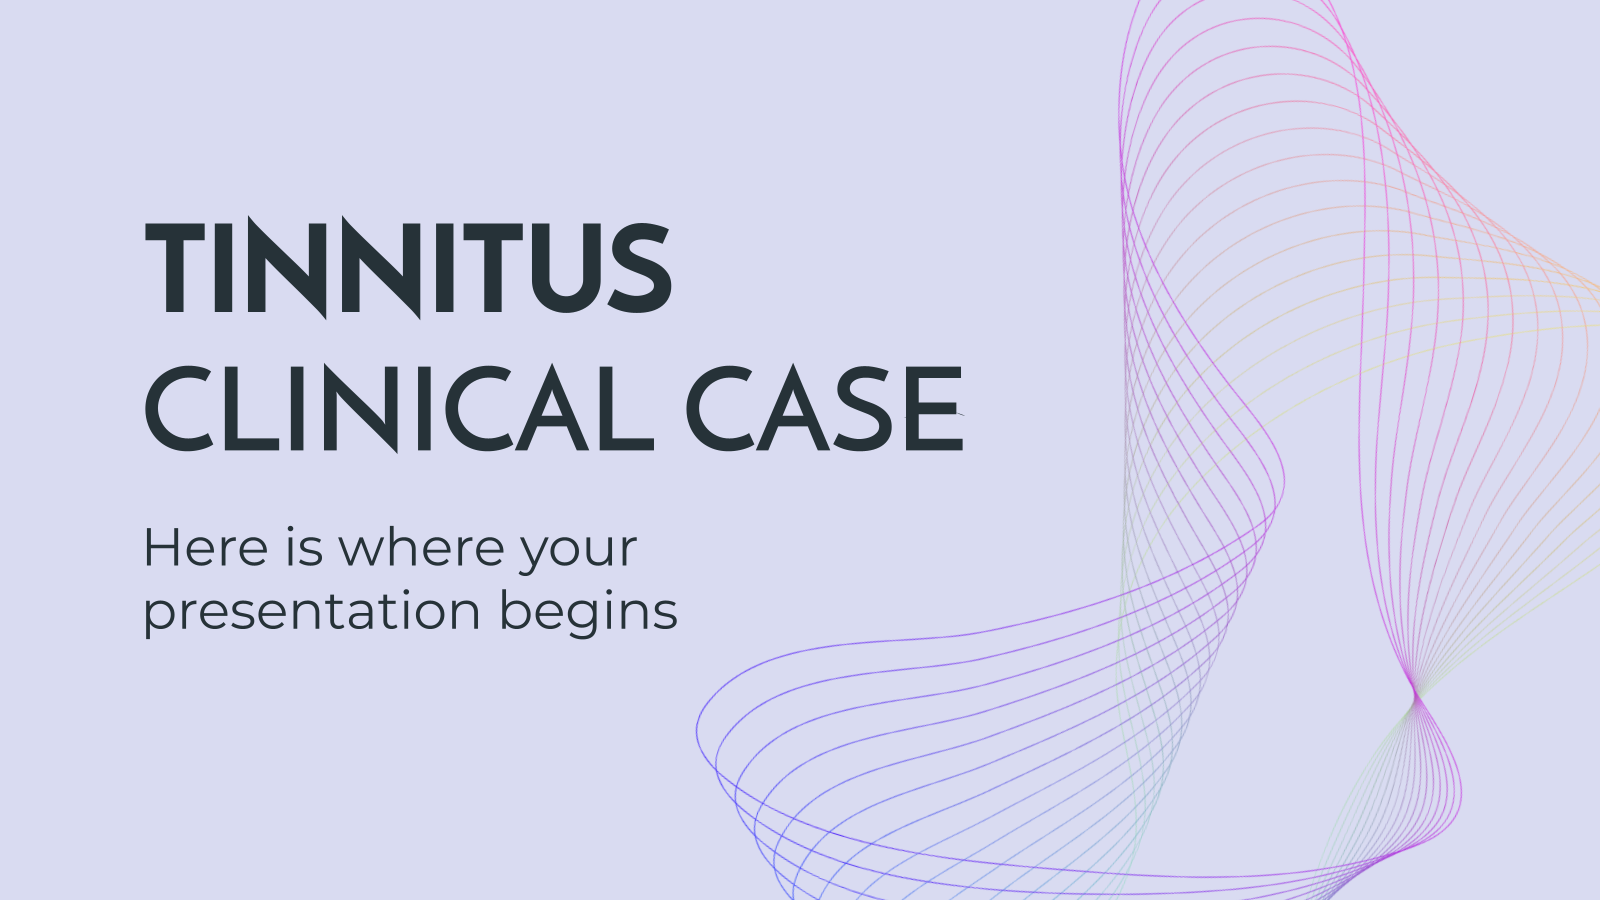 Tinnitus Clinical Case presentation template